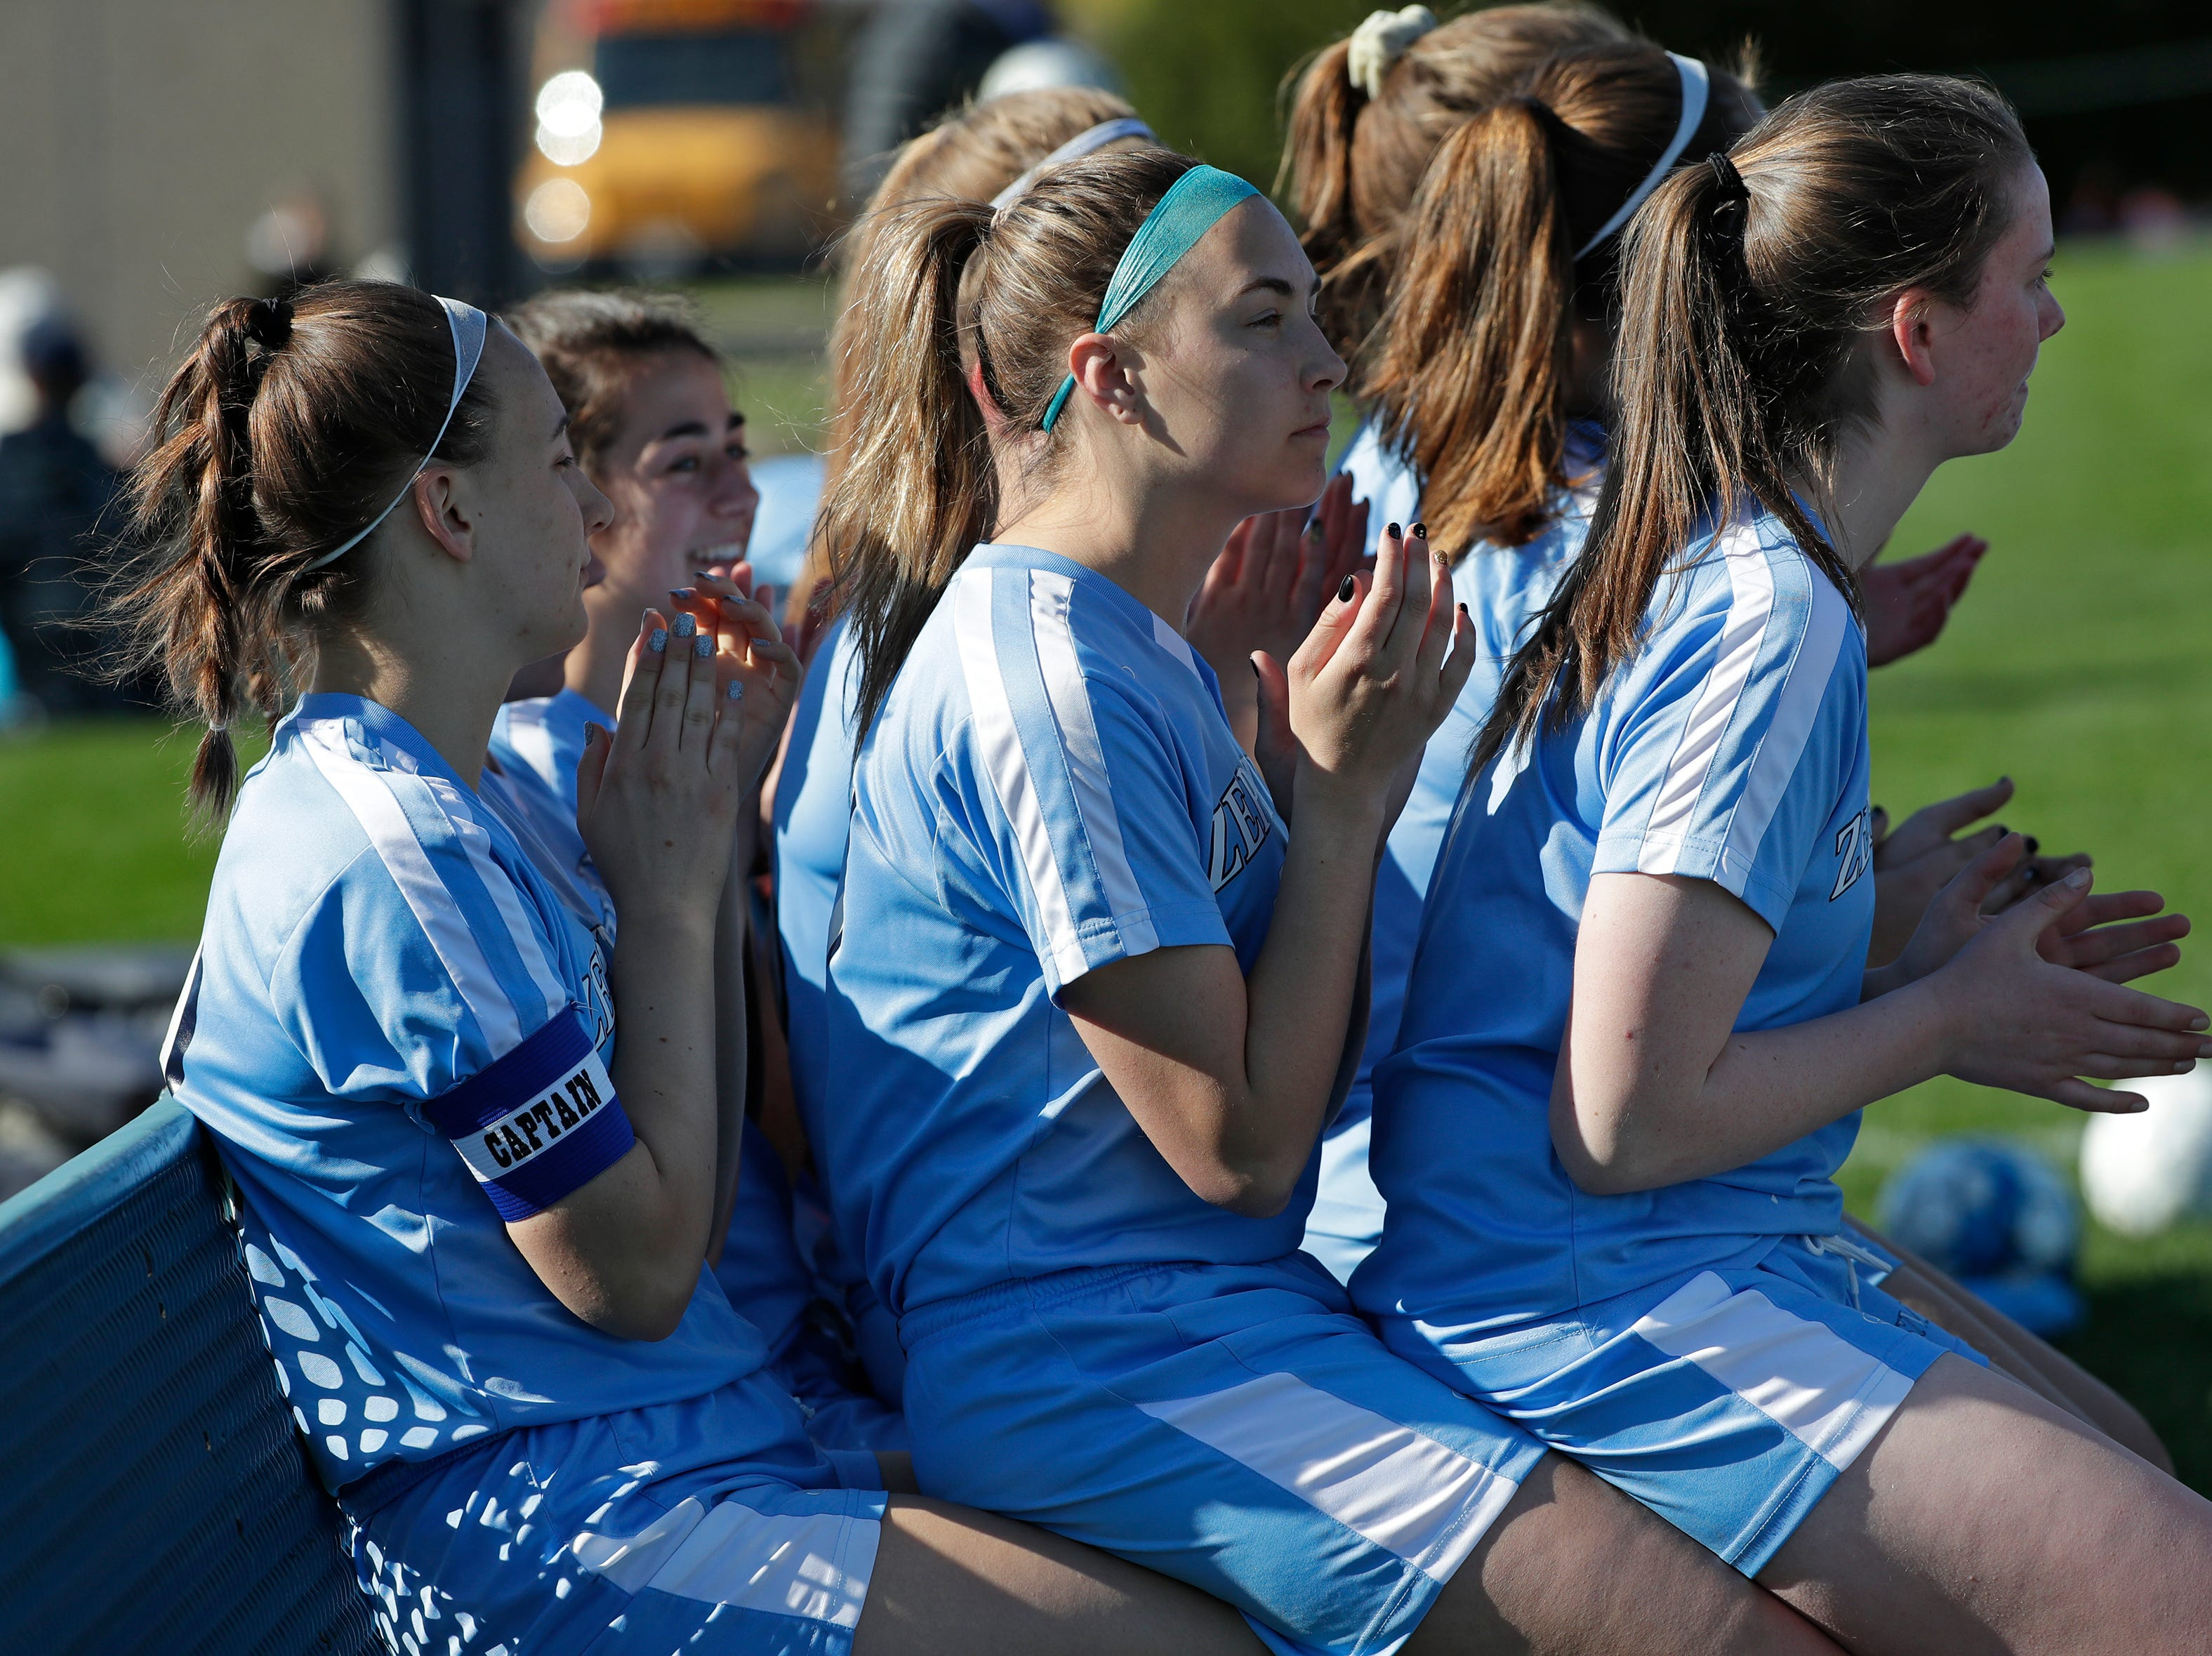 St. Mary Catholic High School's Sydney Andersen, left, Ashley Trebatoski and Ruth Meier sit on each others' laps as they are announced against Roncalli High School during their girls soccer game Tuesday, May 7, 2019, in Fox Crossing, Wis. 